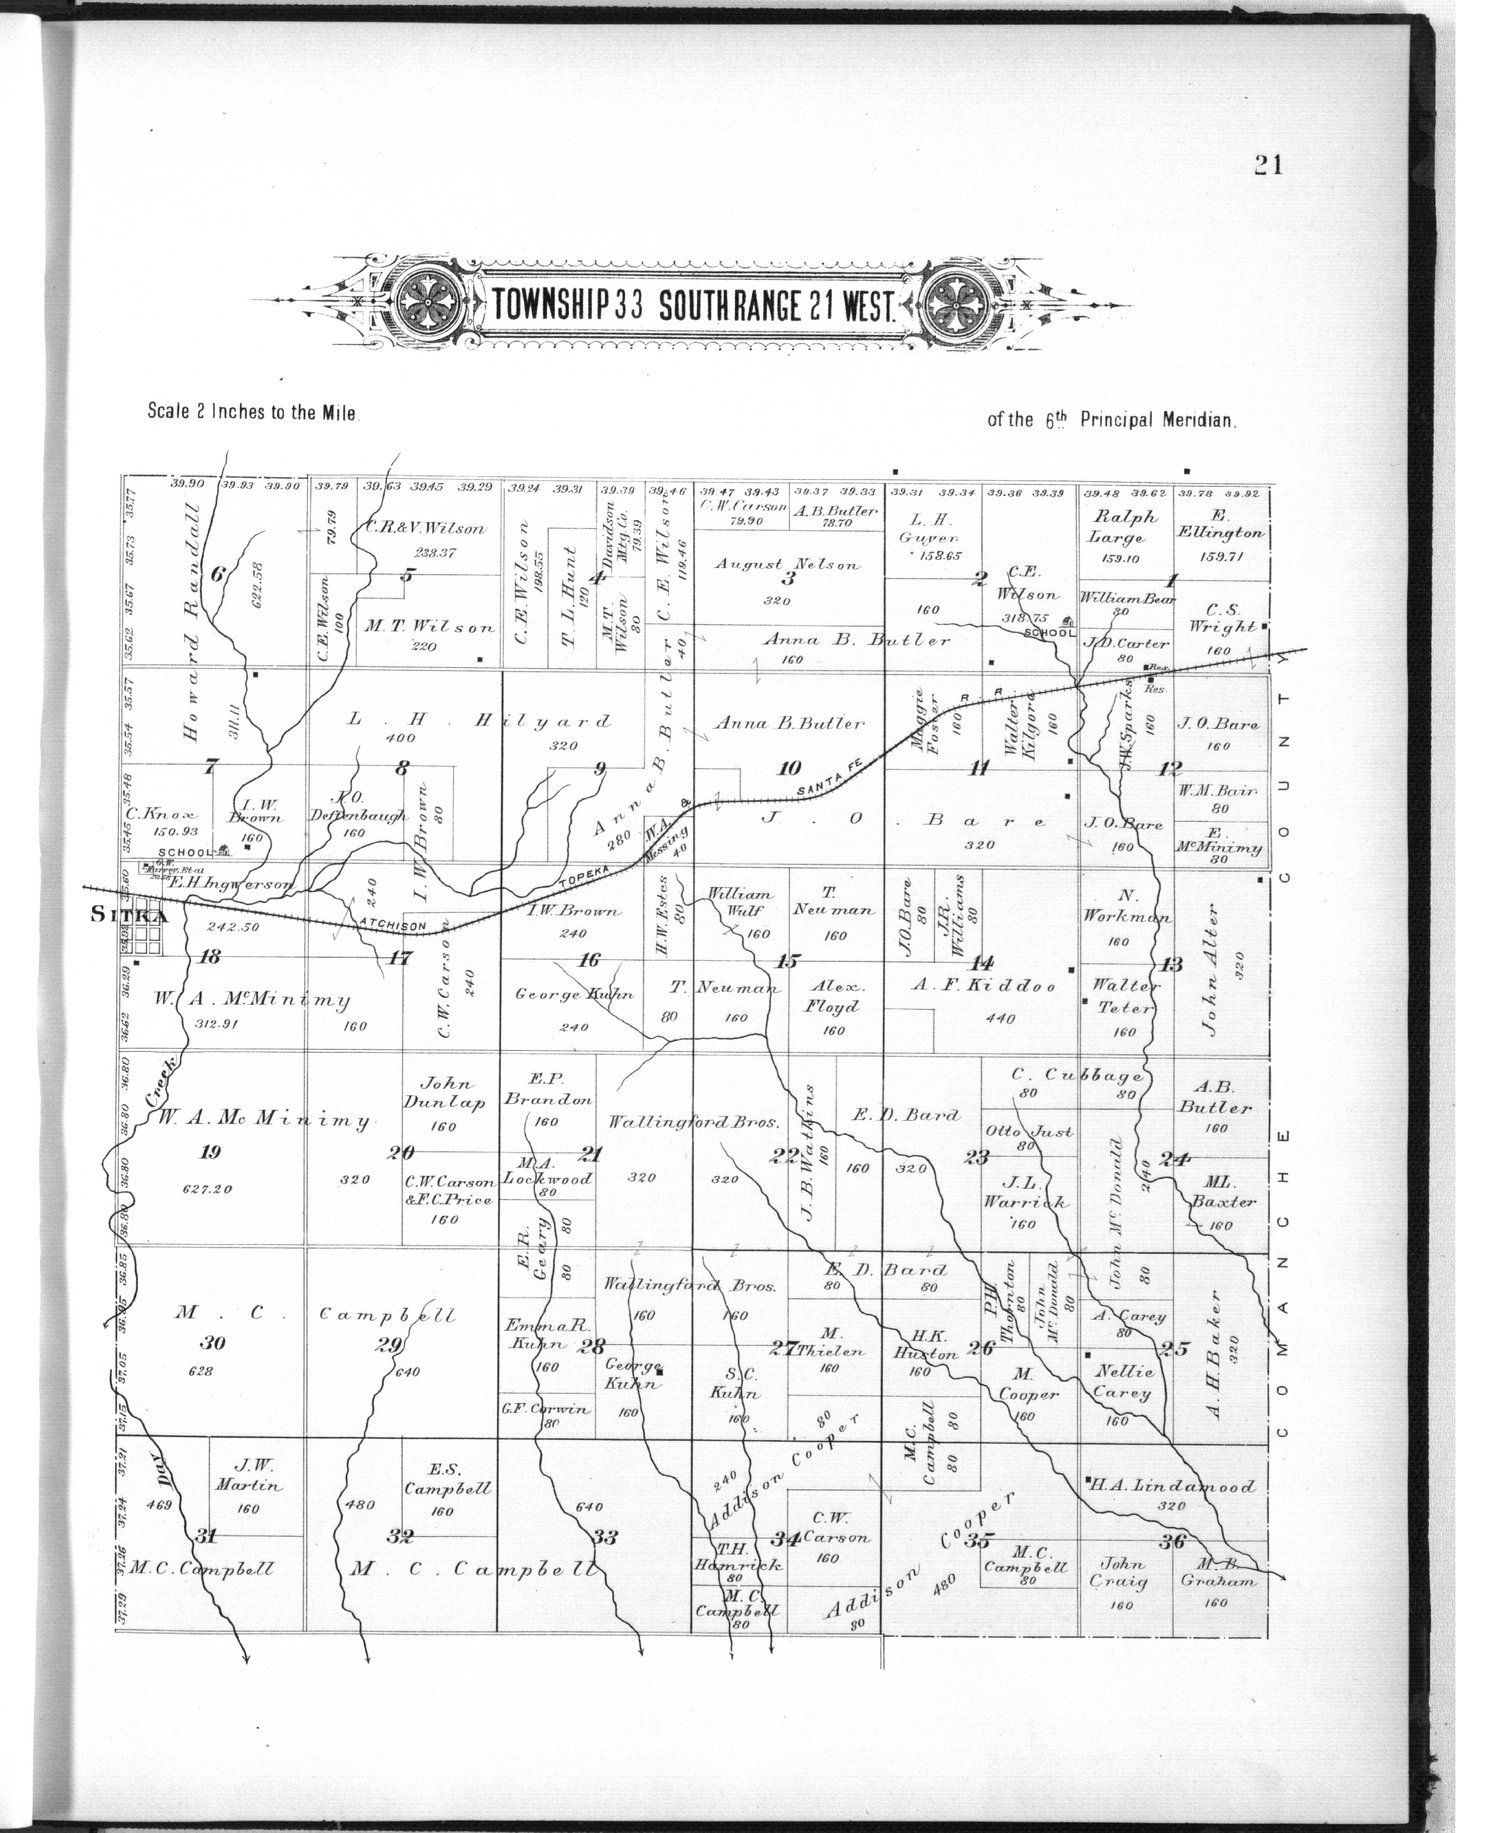 Plat book of Clark County, Kansas - 21